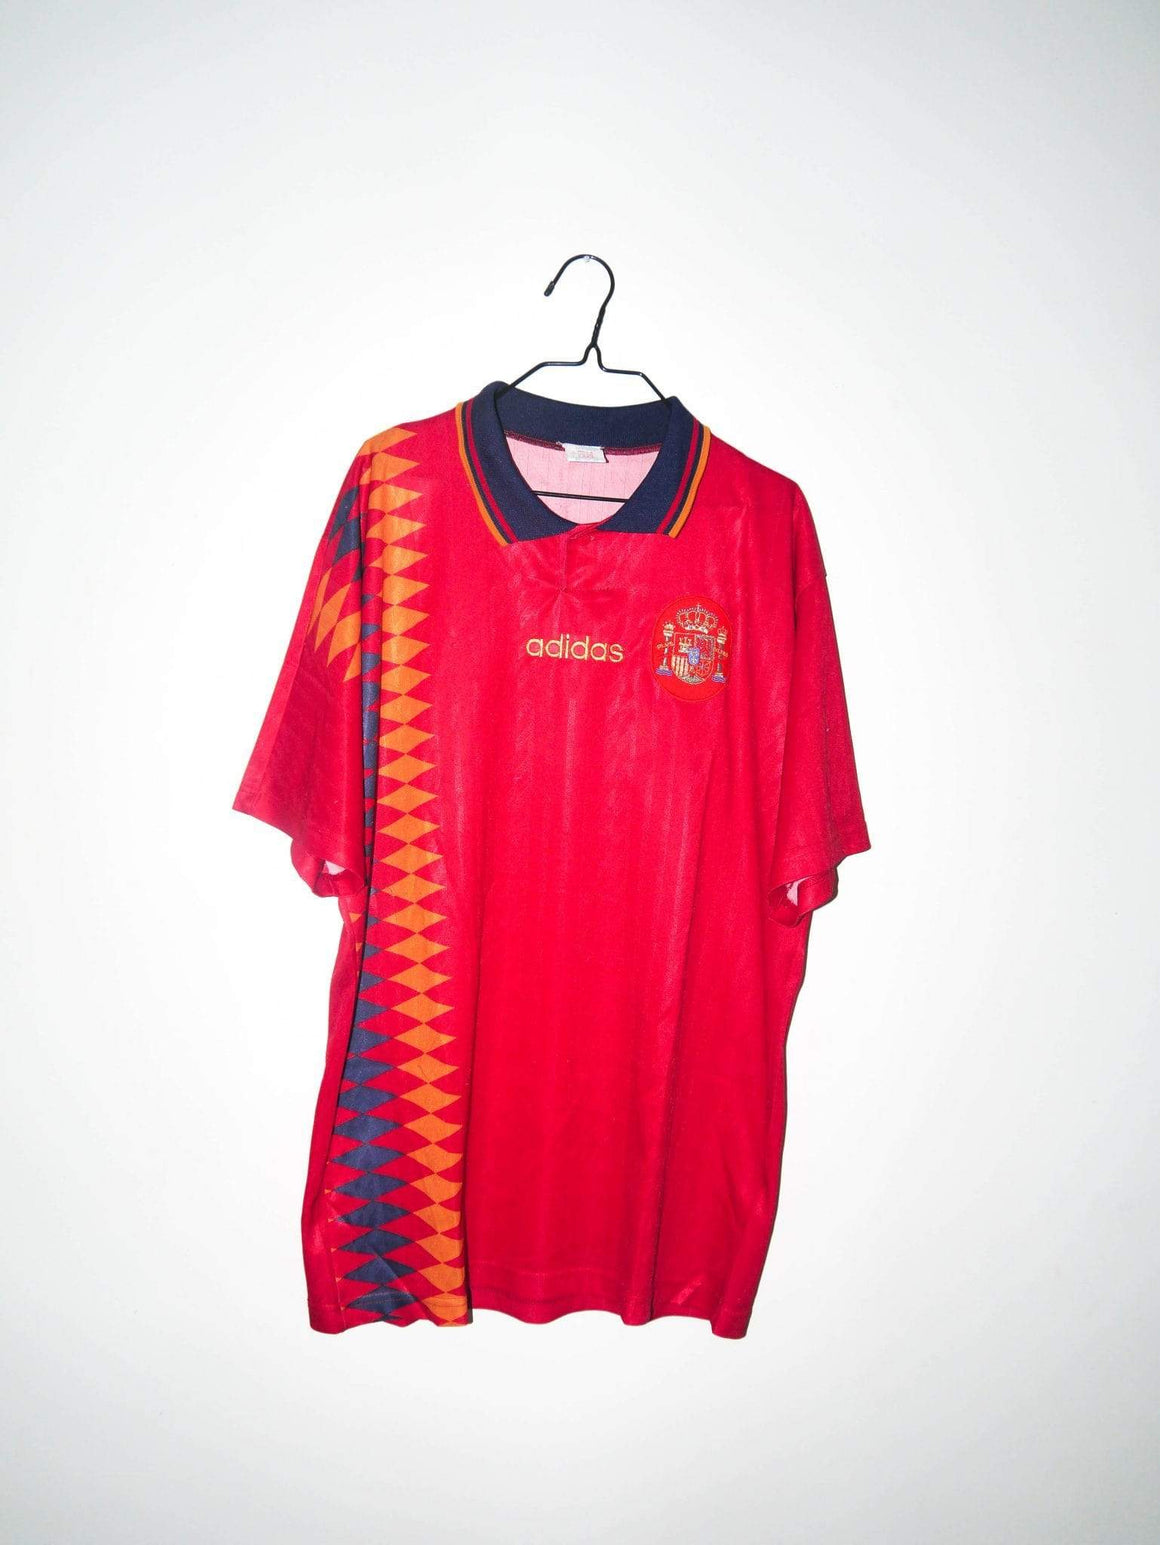 1994 1996 Spain home shirt - L - Football Shirt Collective